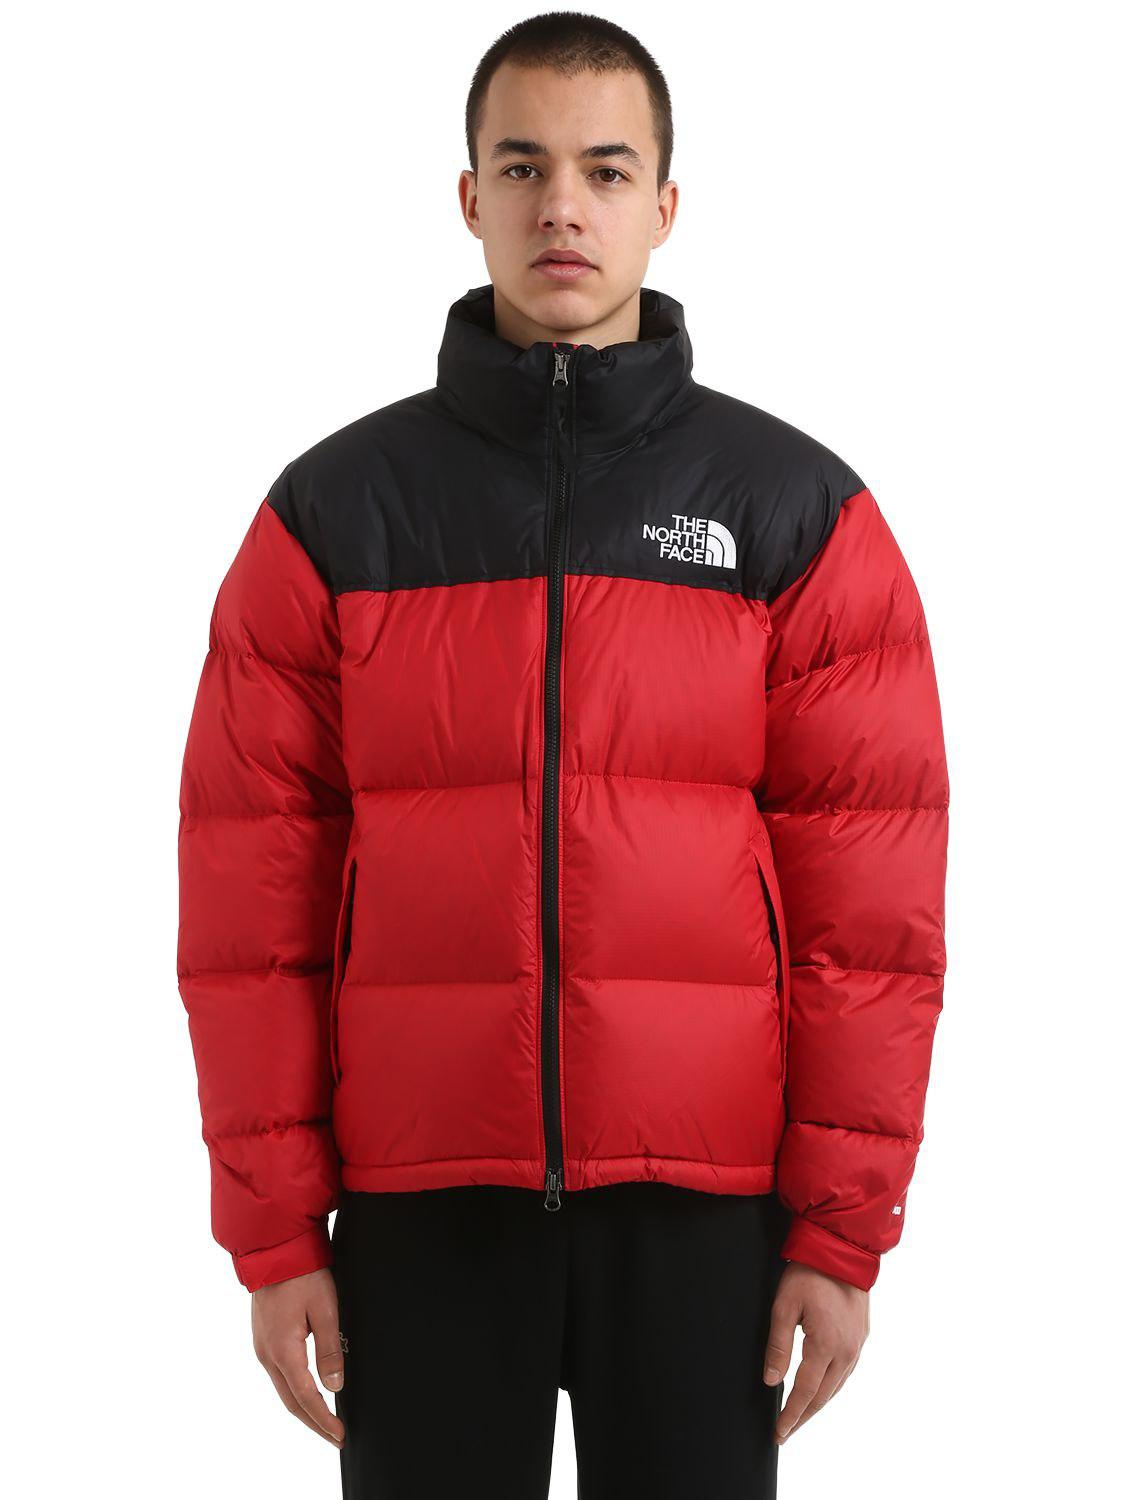 103e69453d The North Face 1996 Retro Nuptse Down Jacket in Red for Men - Lyst